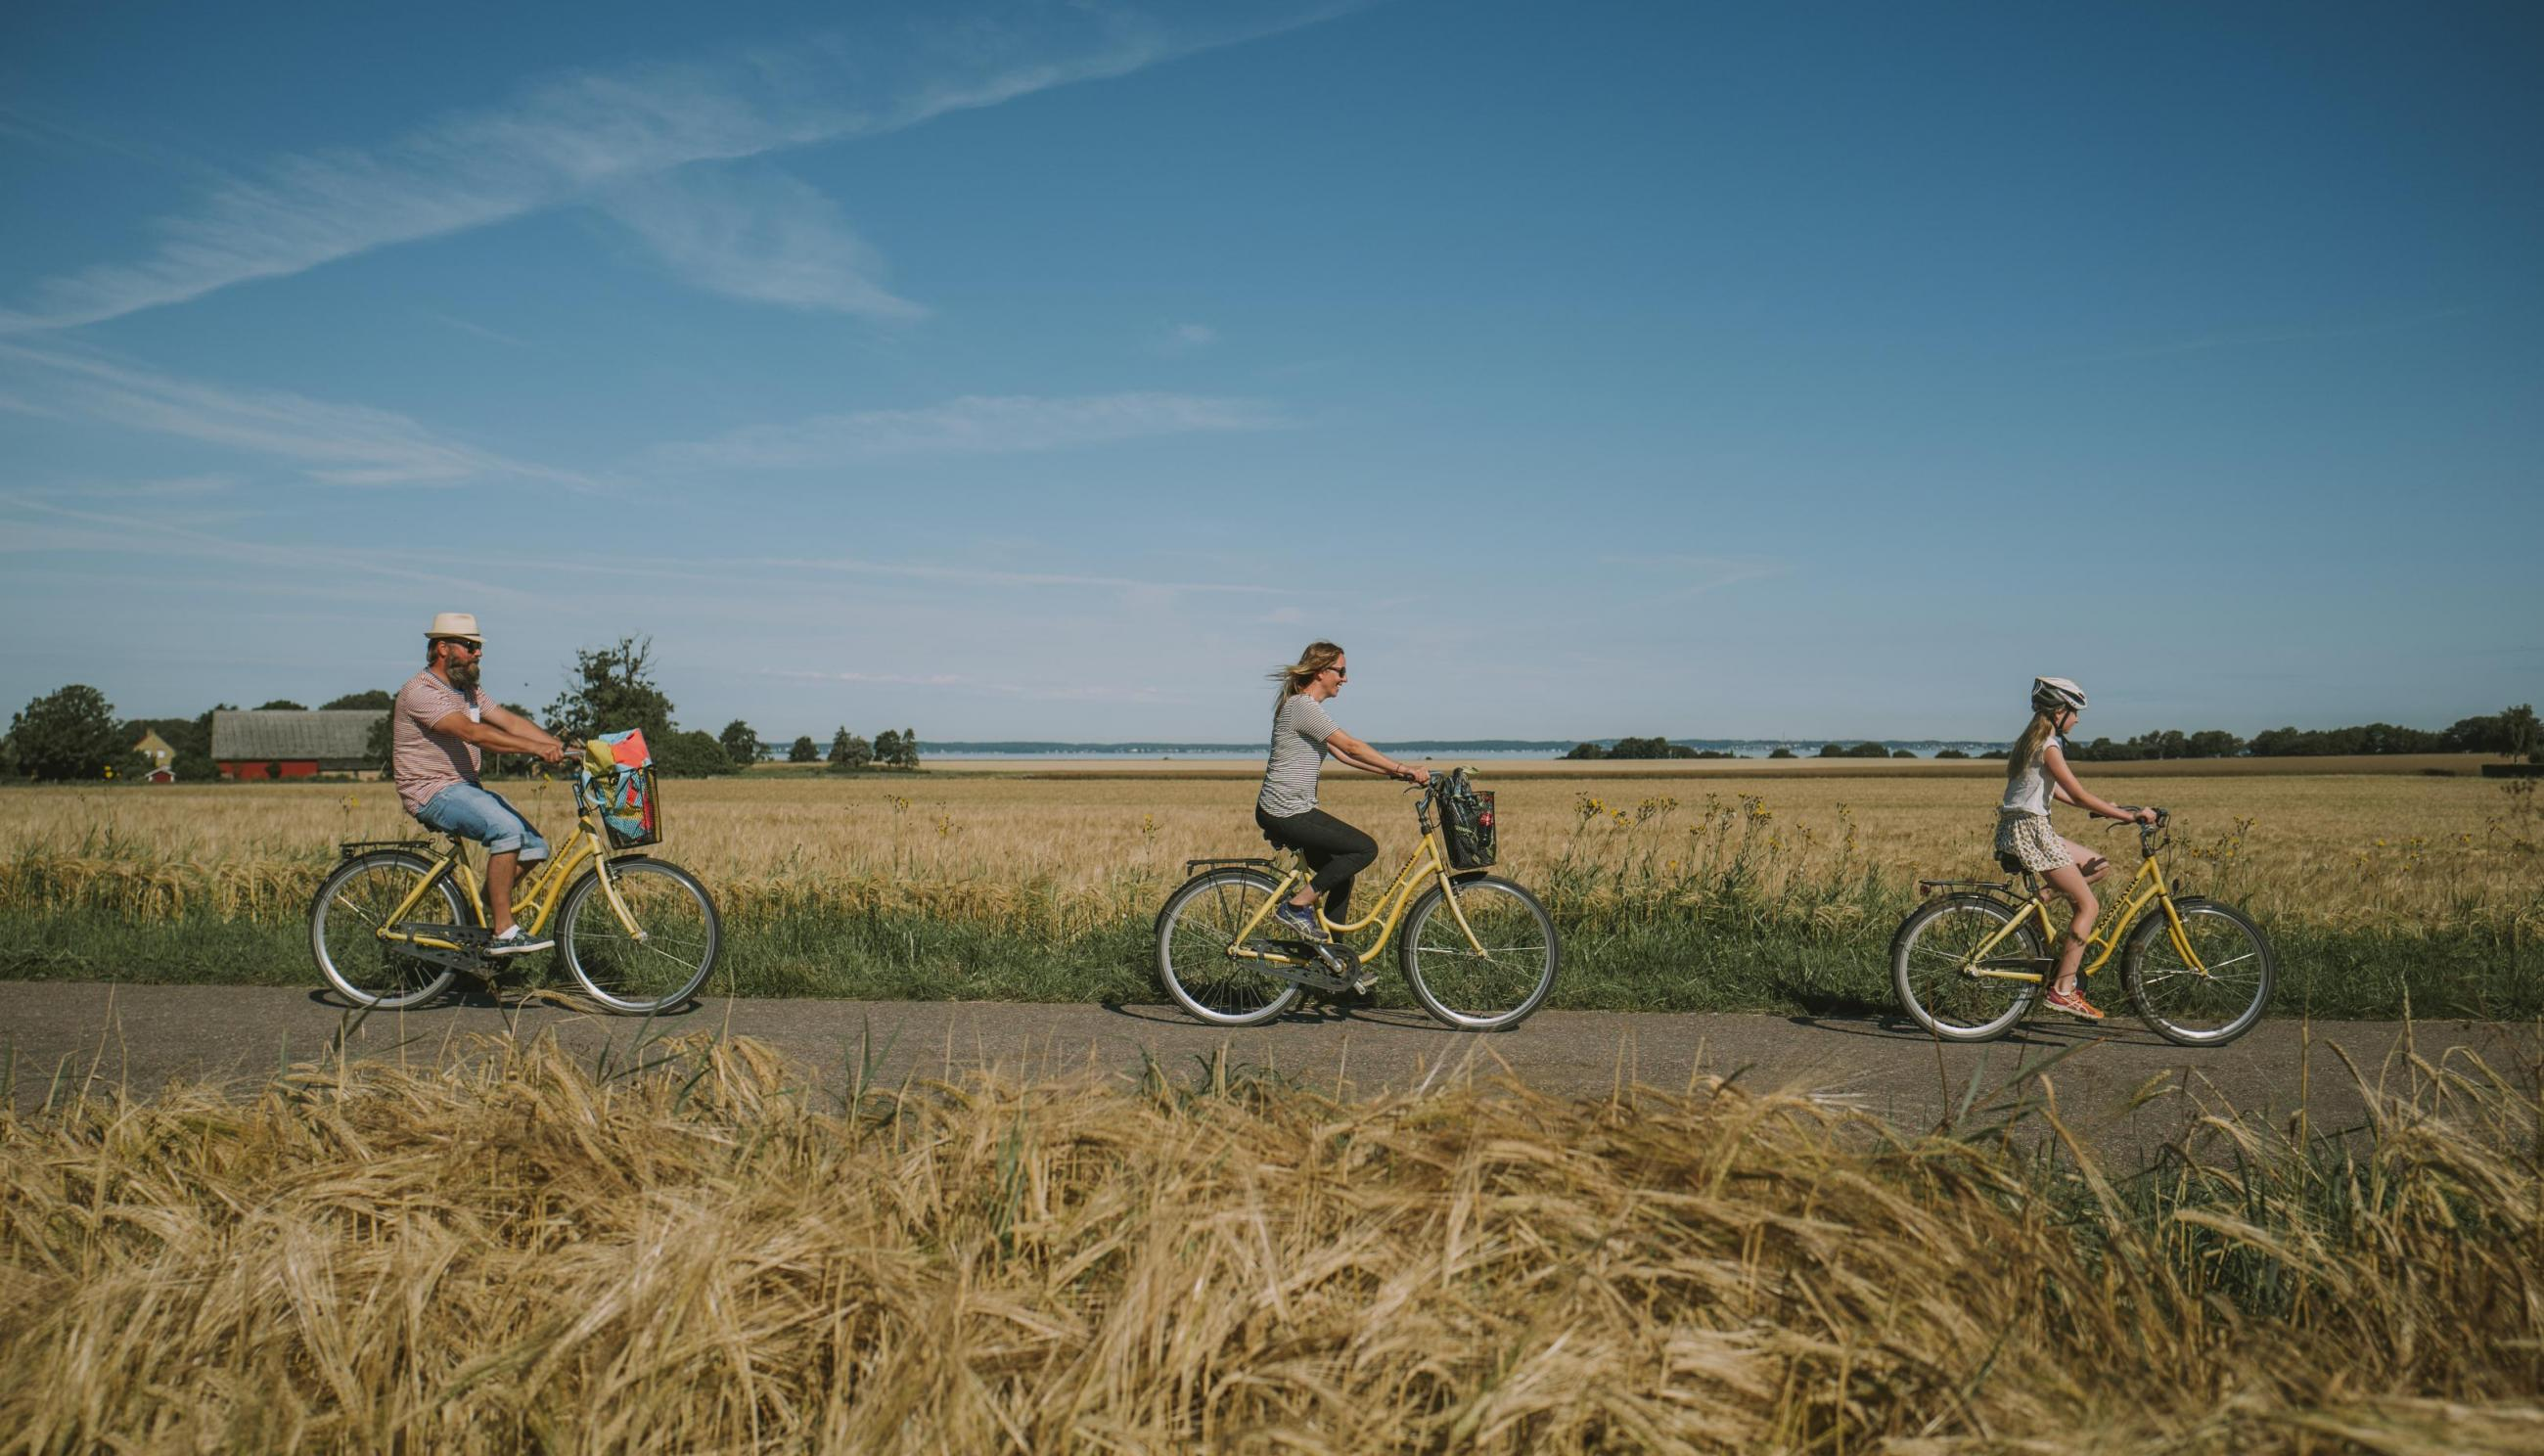 Family biking through the fields on the island of Ven